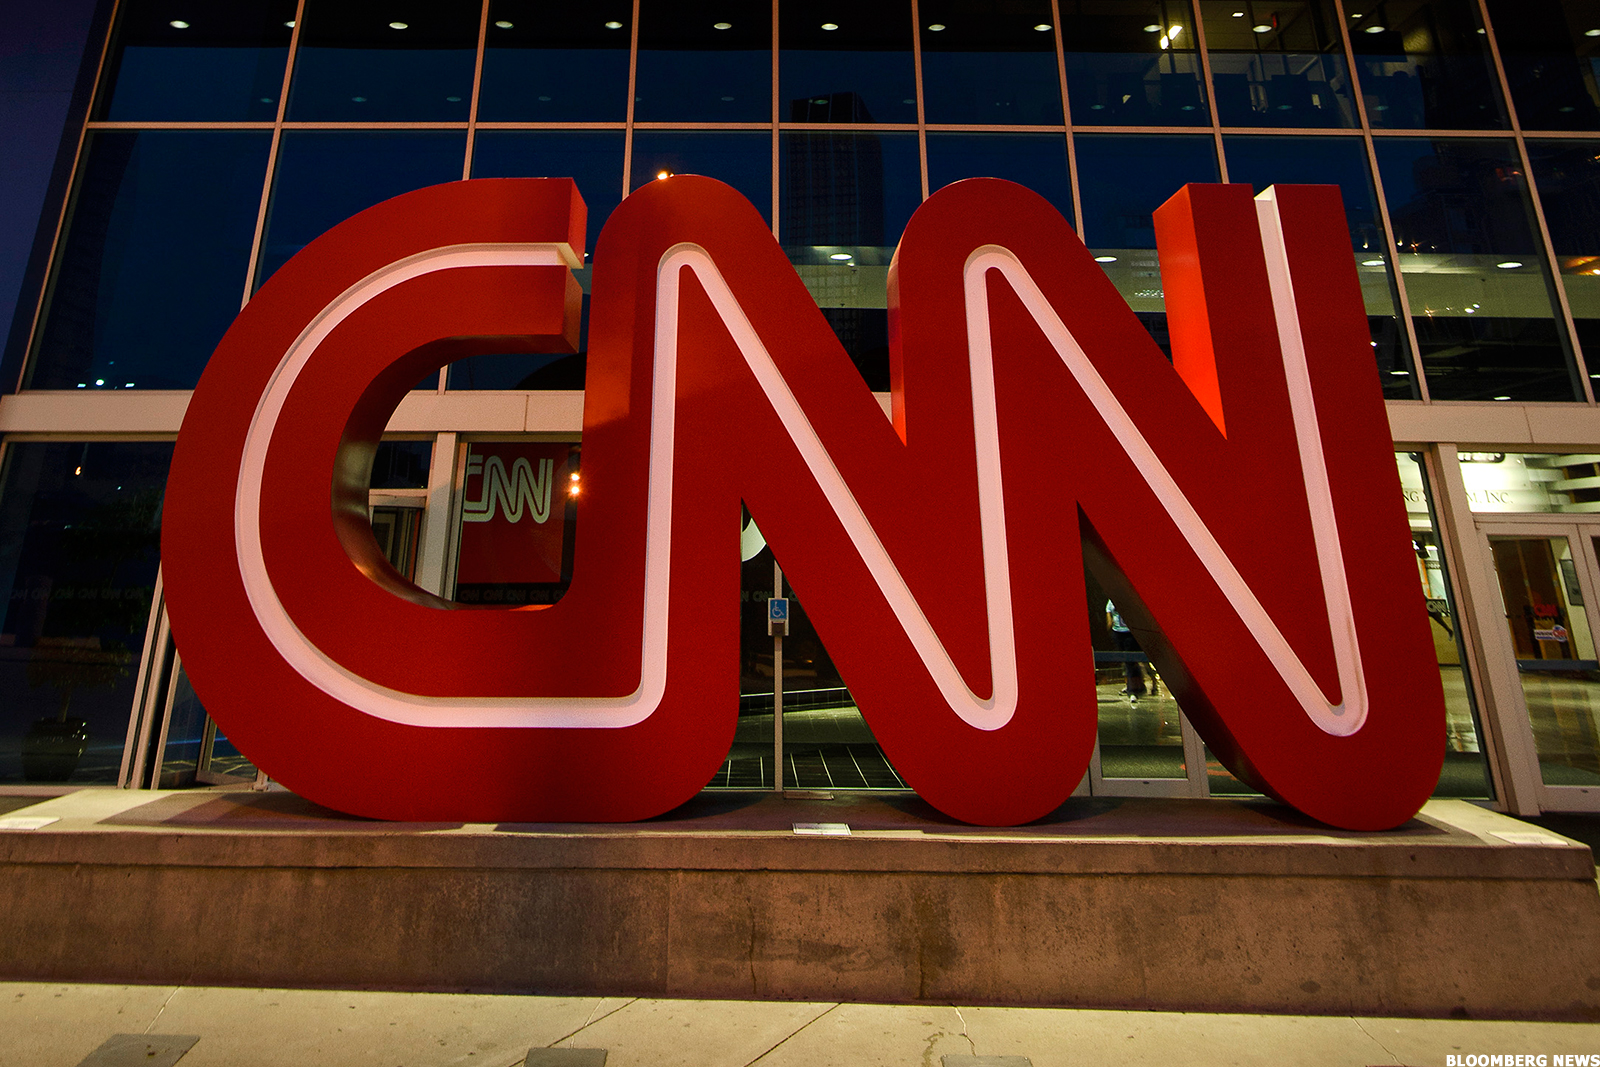 Att told to sell time warners cnn to win regulatory approval regulators have reportedly made it clear to att that a deal would easily go through if the company agreed to the sale of cnn buycottarizona